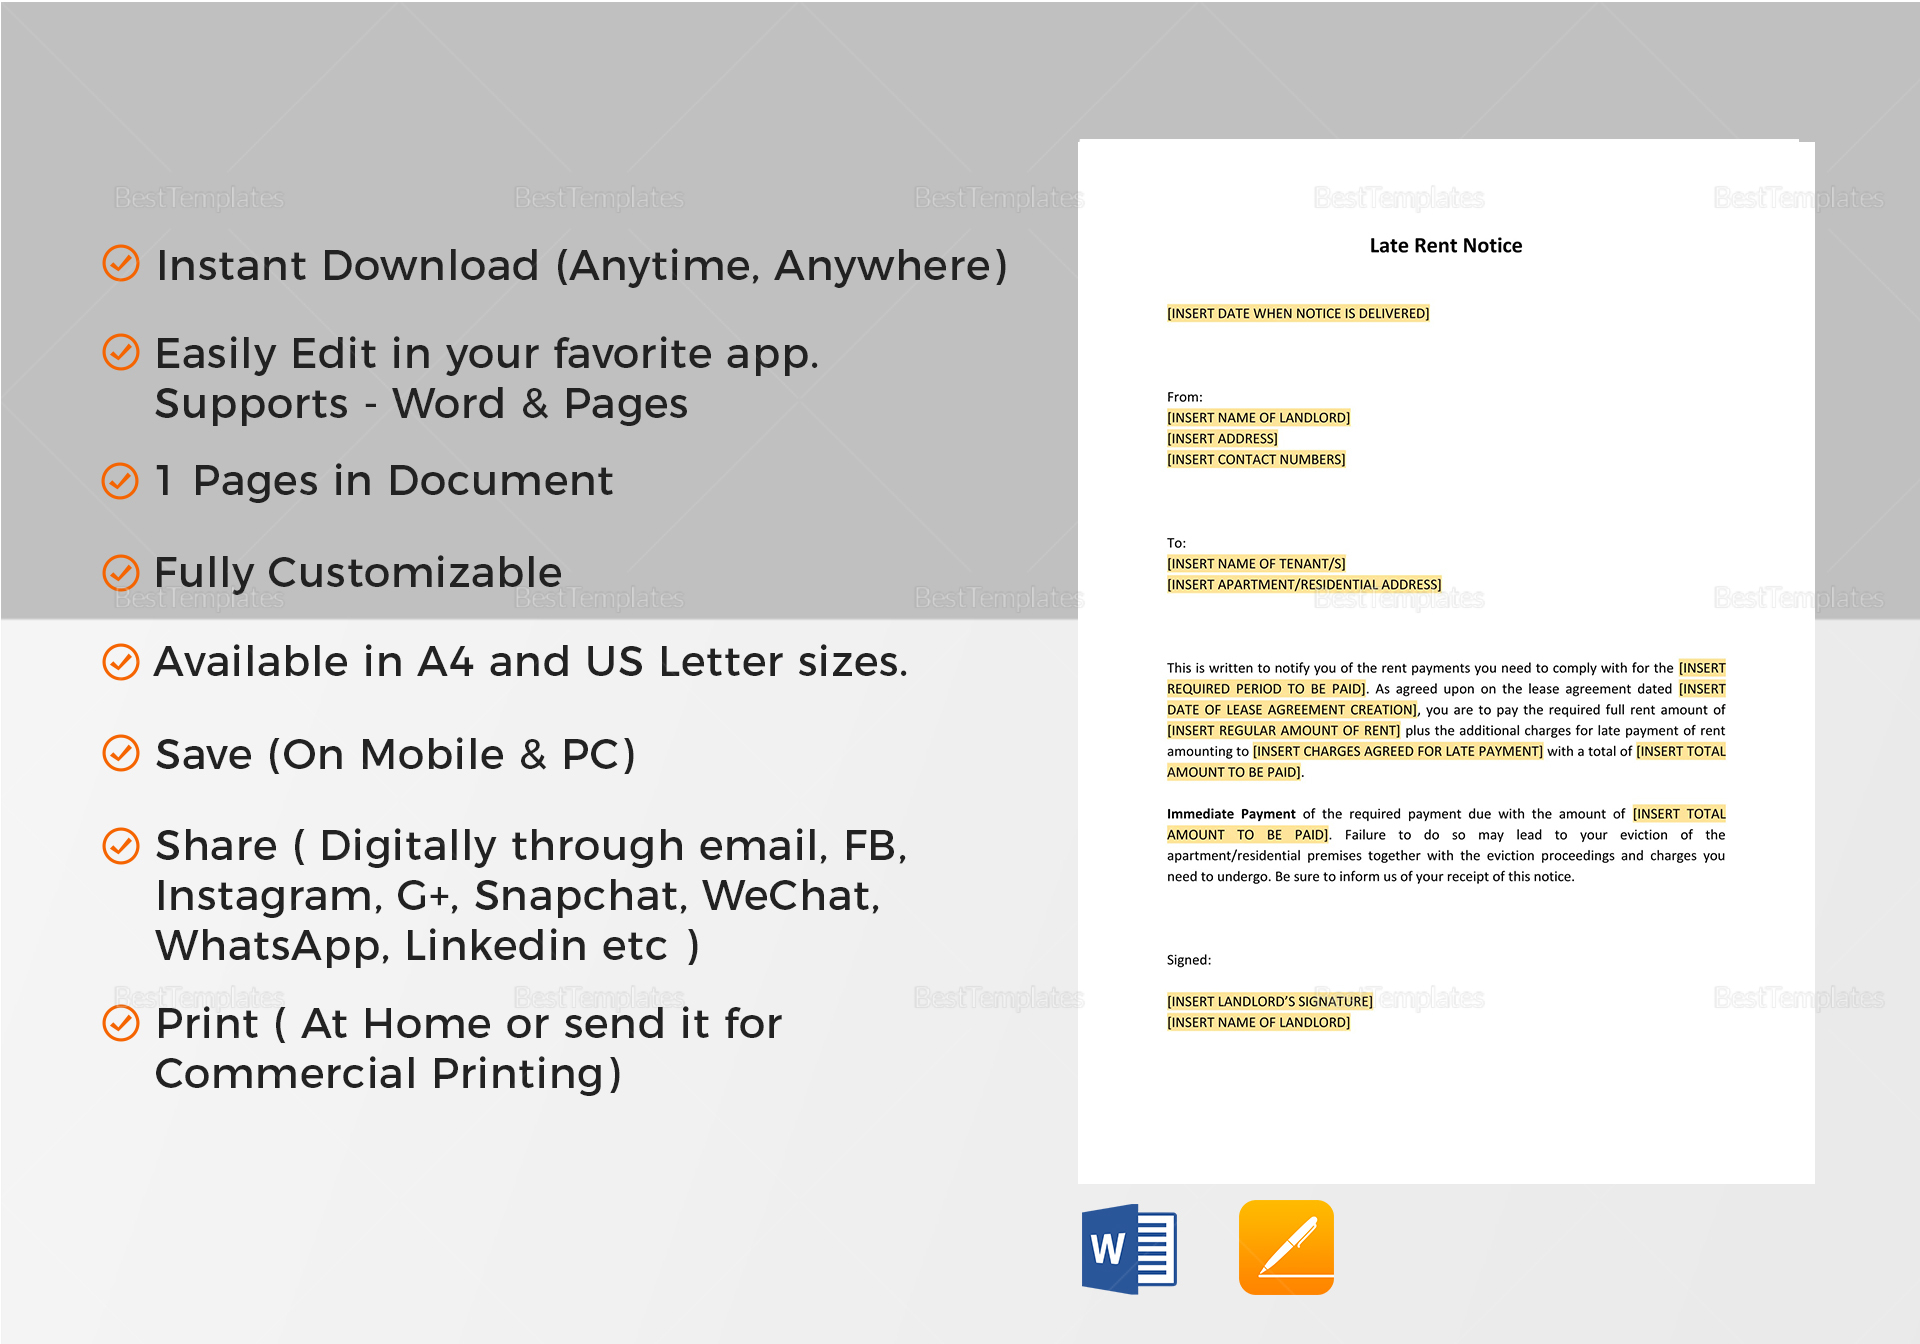 Late rent notice template in word google docs apple pages late rent notice template late rent notice template altavistaventures Images